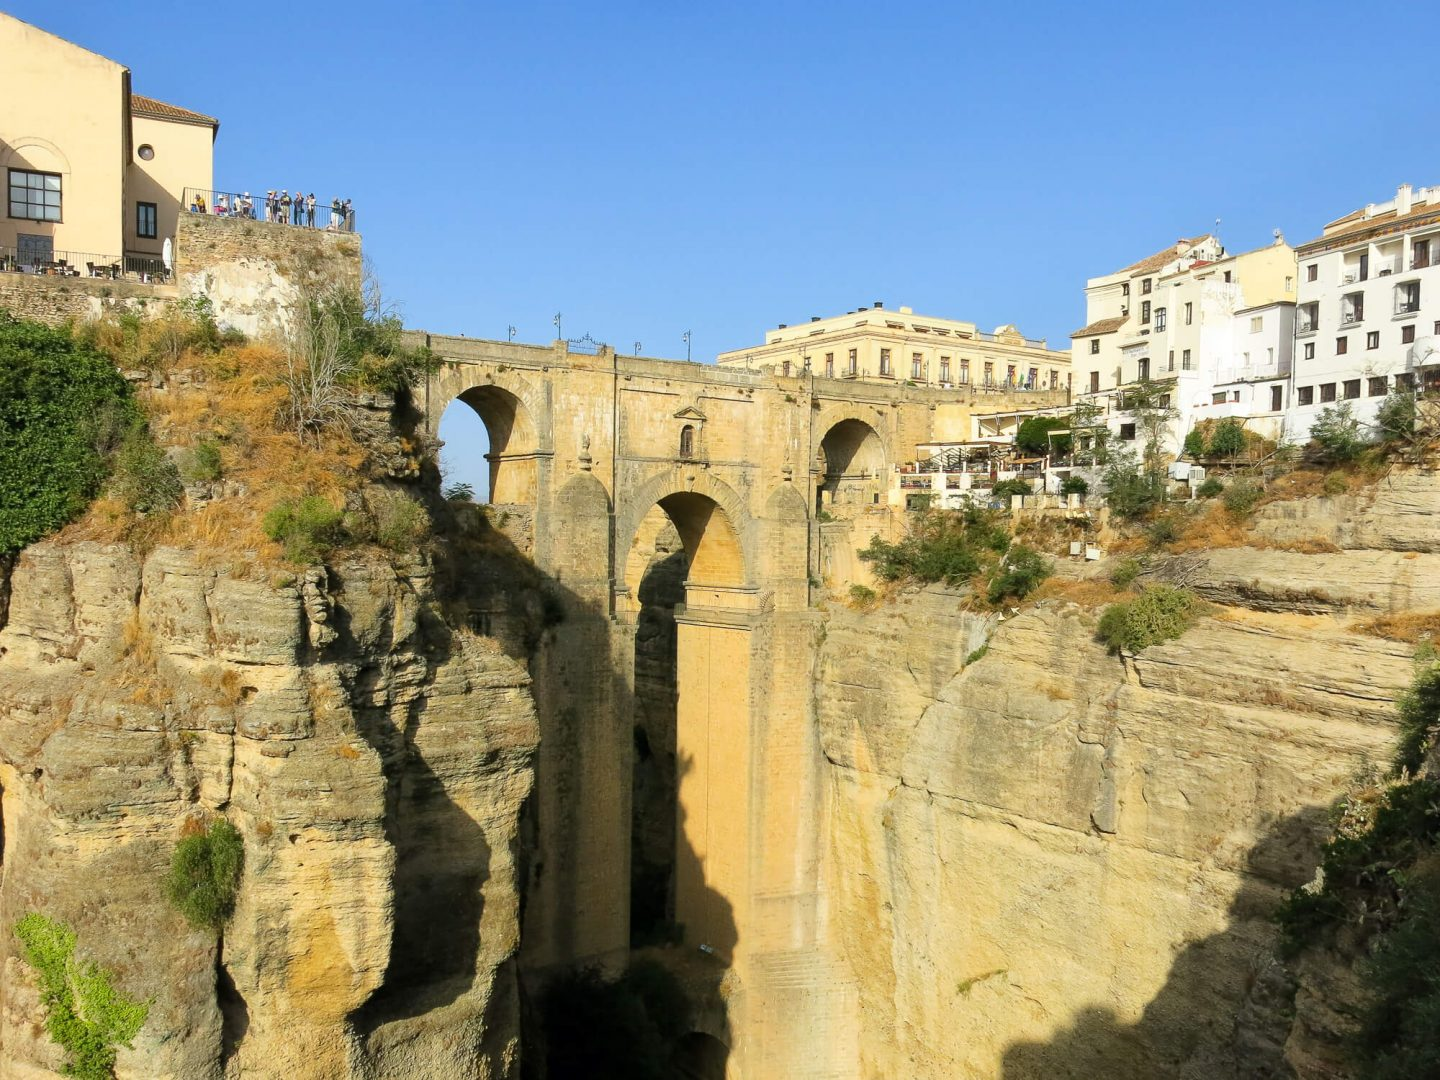 The Spanish town of Ronda. A great day trip from Kempinski Hotel Bahía, Spain